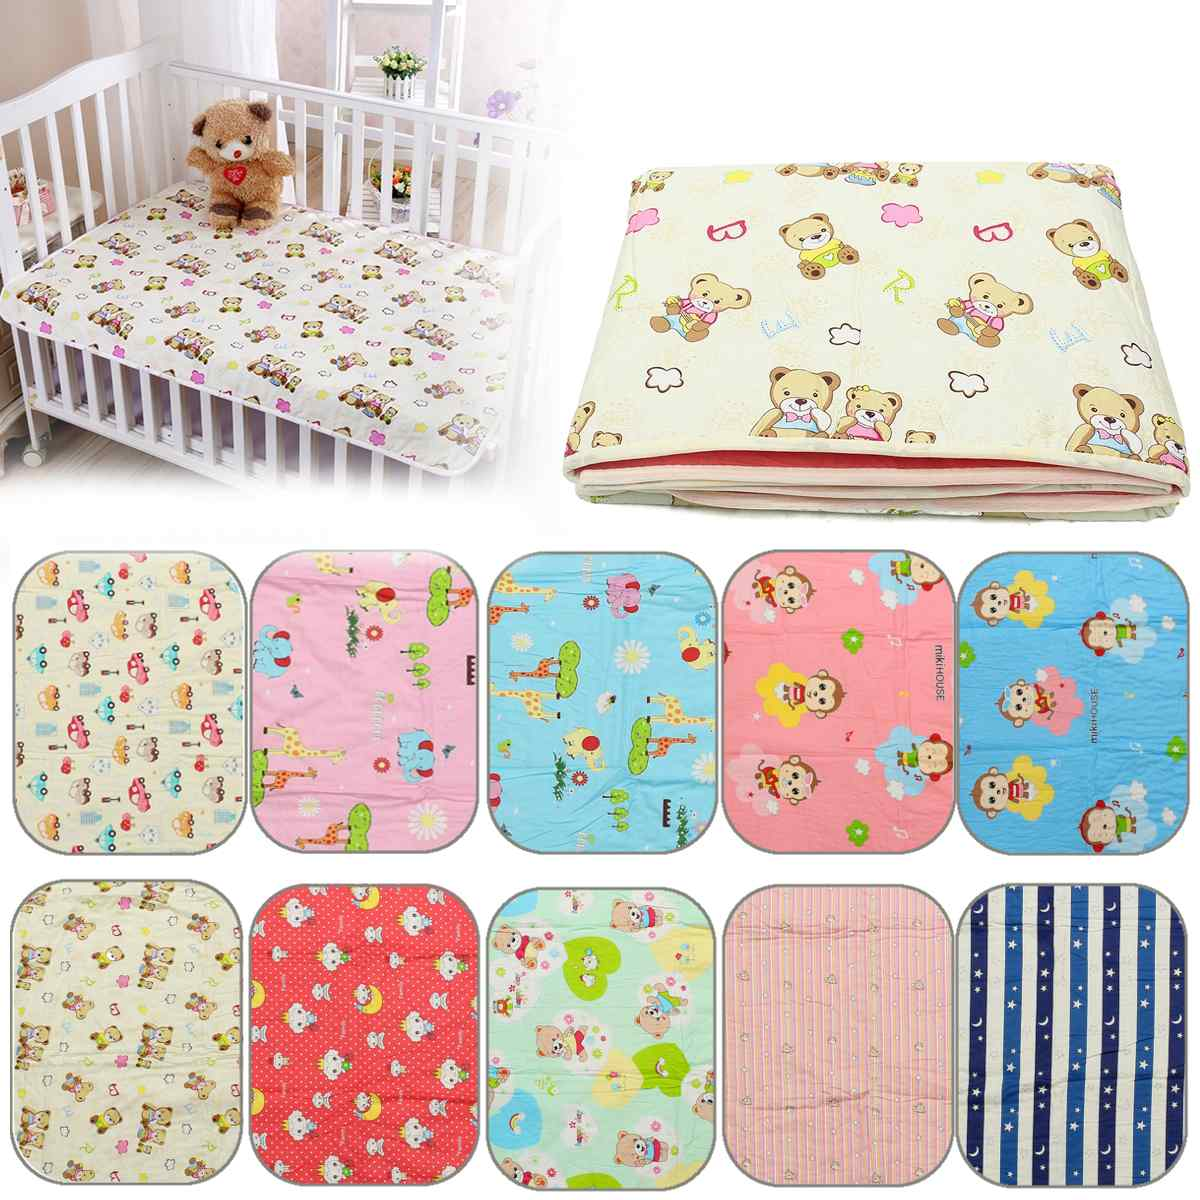 Baby Adult Infant Diaper Nappy Urine Mat Kid Waterproof Bedding Pad Mattress 80x120cm 10 Types Cotton+Polyester Home Textile